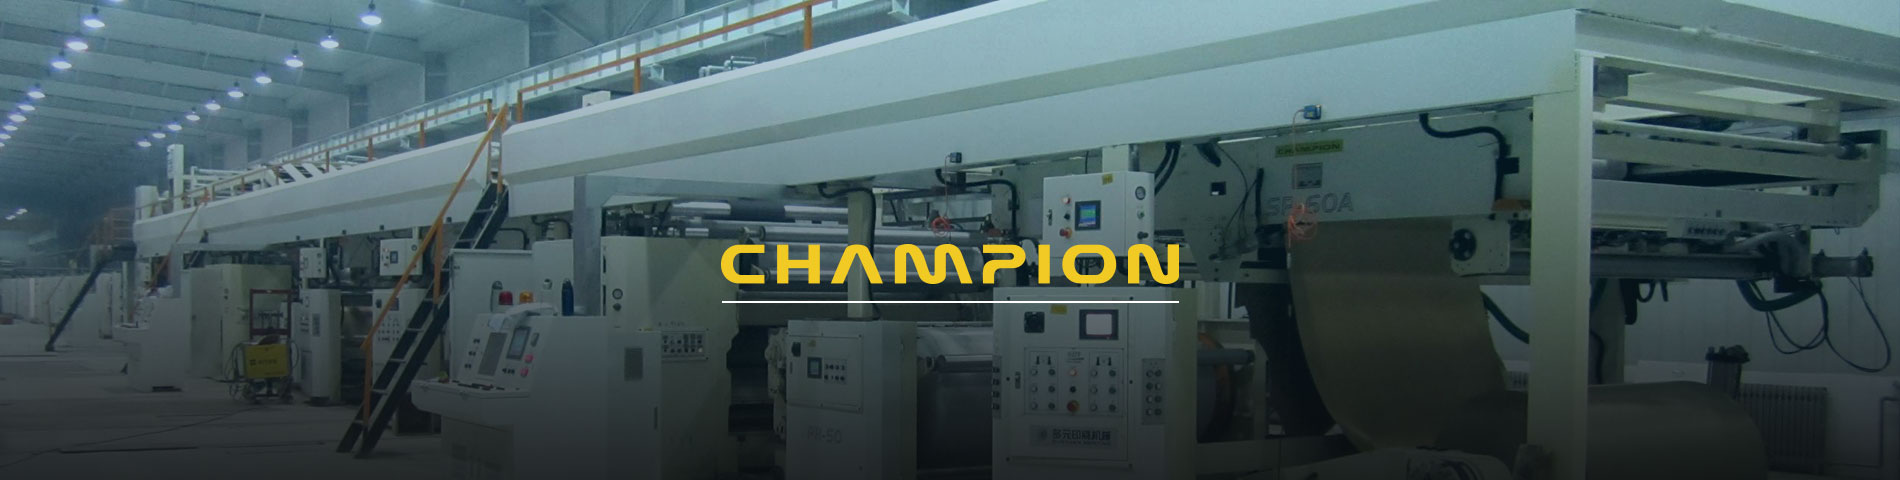 Champion Machinery is a Professional Corrugated Cardboard Equipment Manufacturer